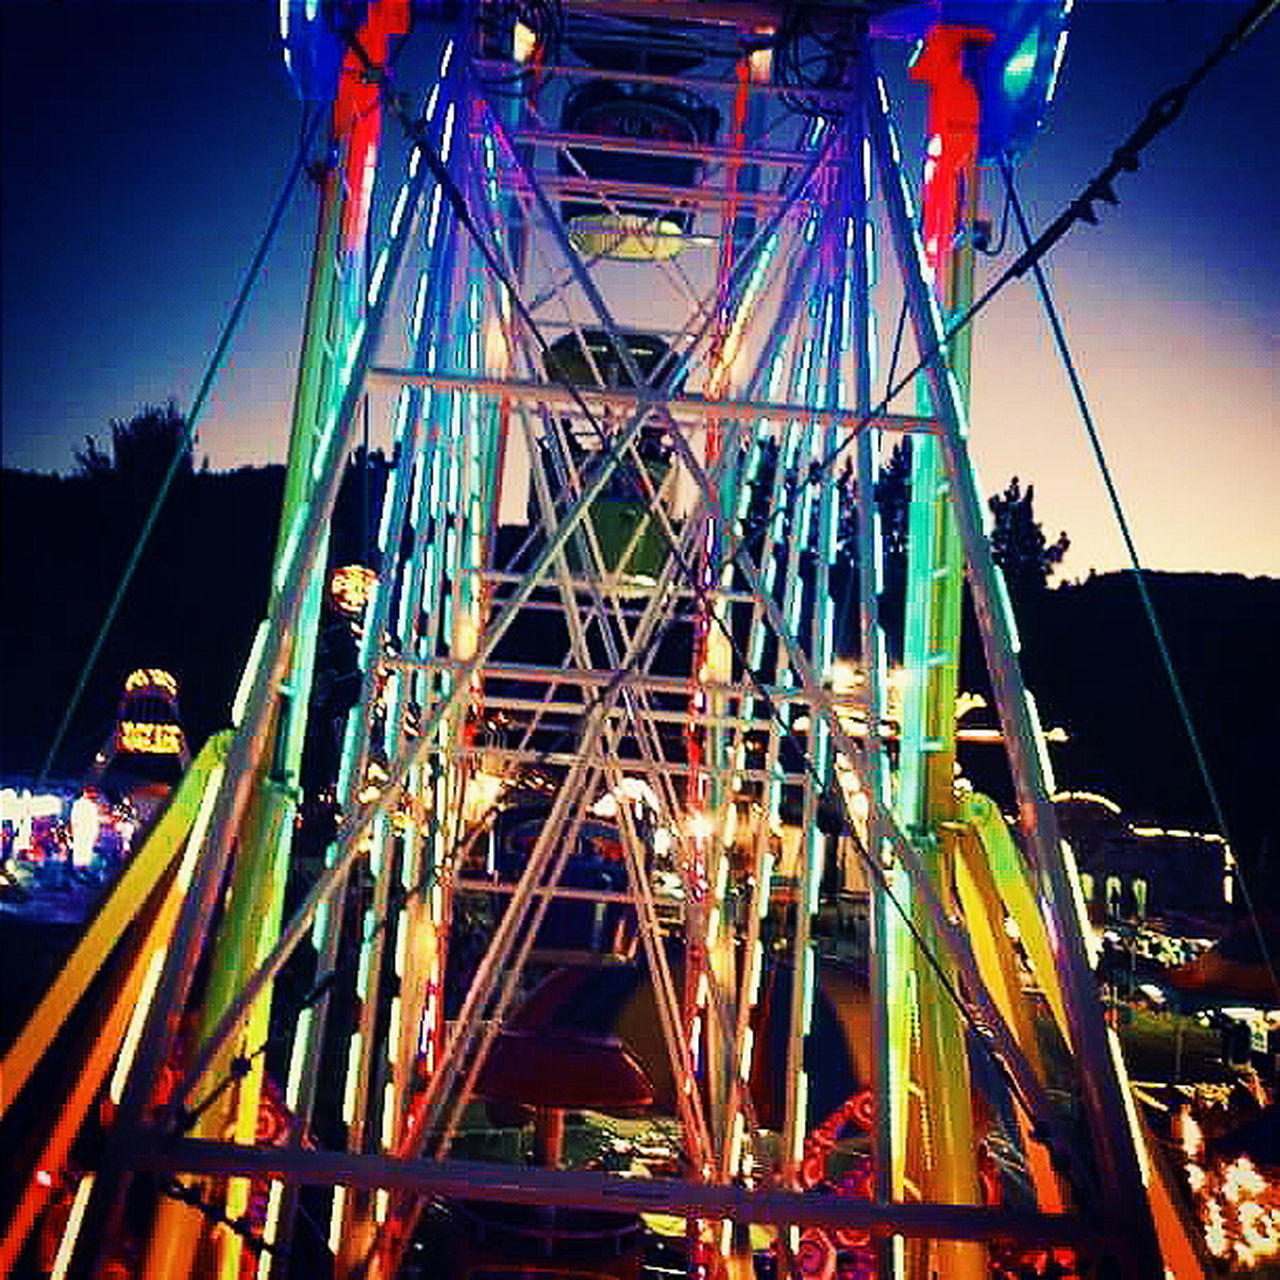 amusement park, arts culture and entertainment, amusement park ride, night, multi colored, illuminated, ferris wheel, built structure, low angle view, outdoors, no people, sky, architecture